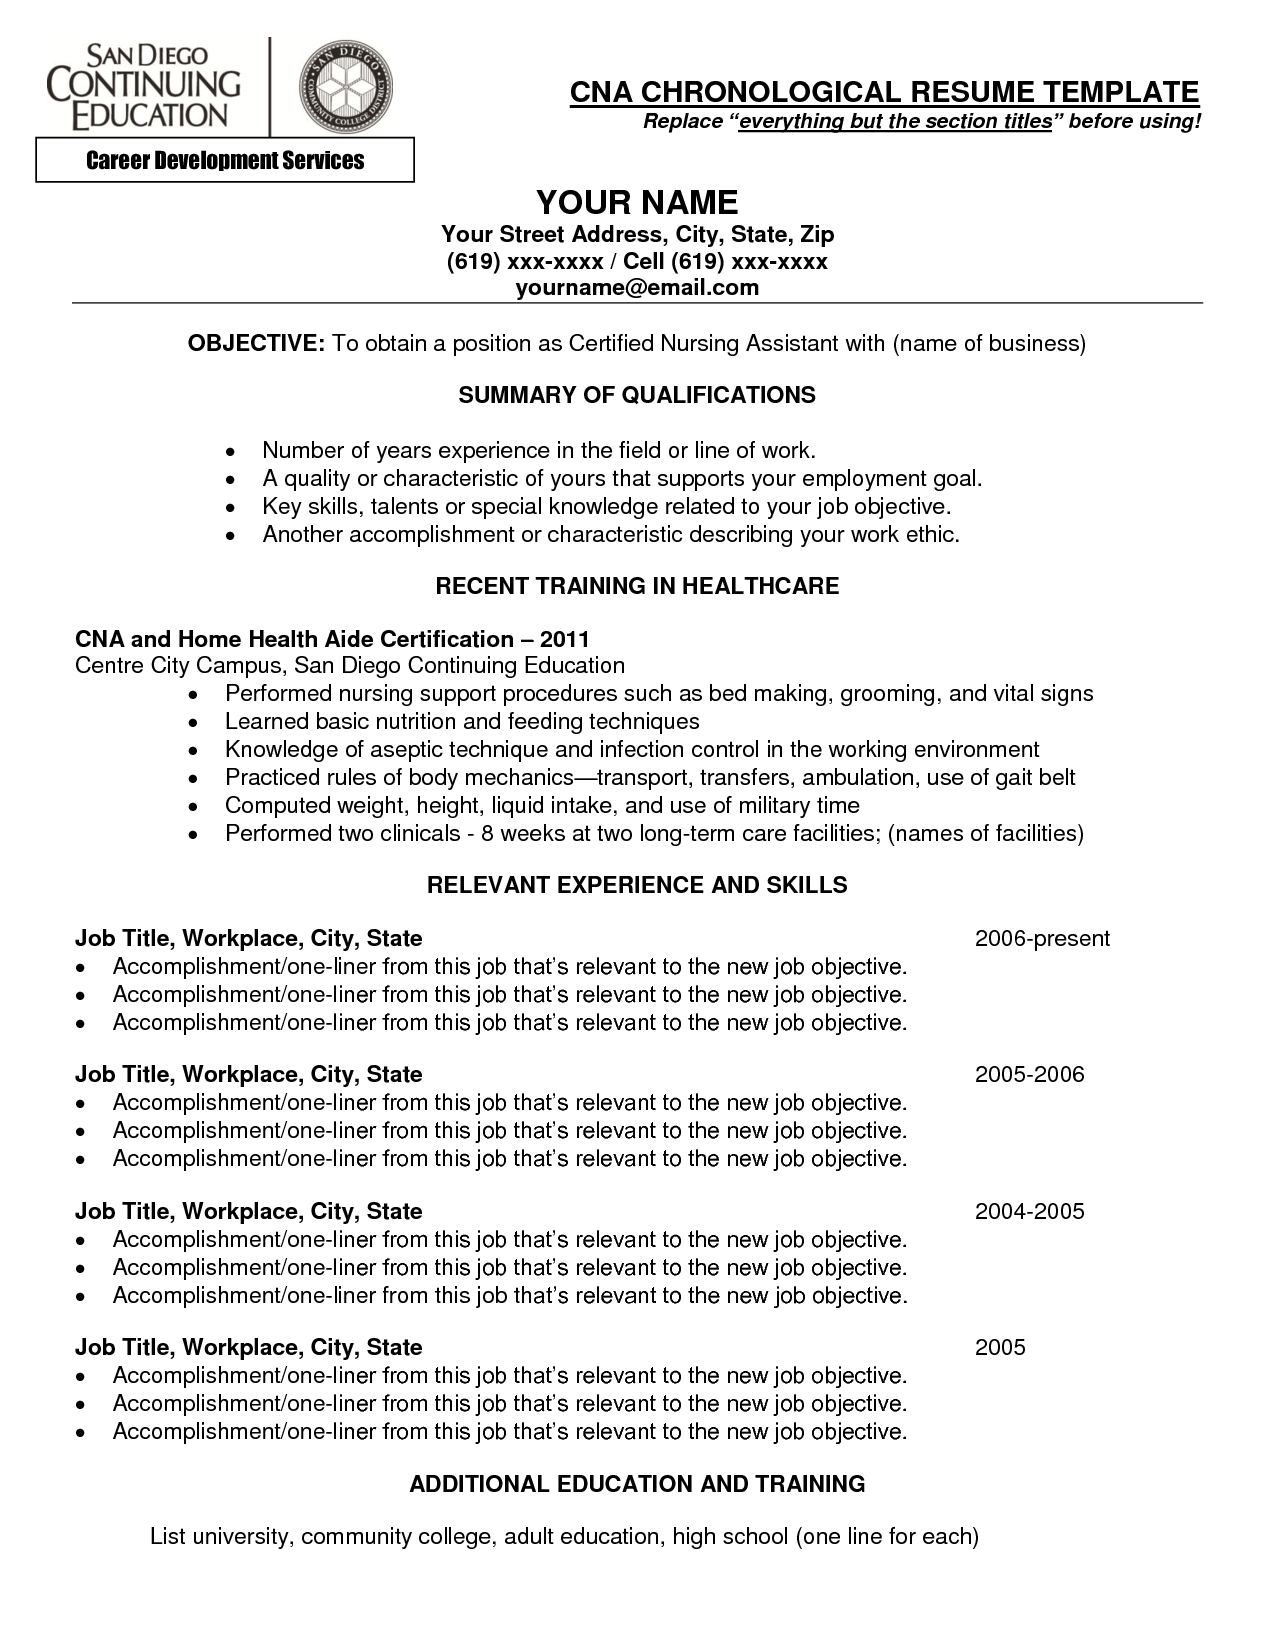 resume sample for cna resume samples for cna template hospital nursing assistant